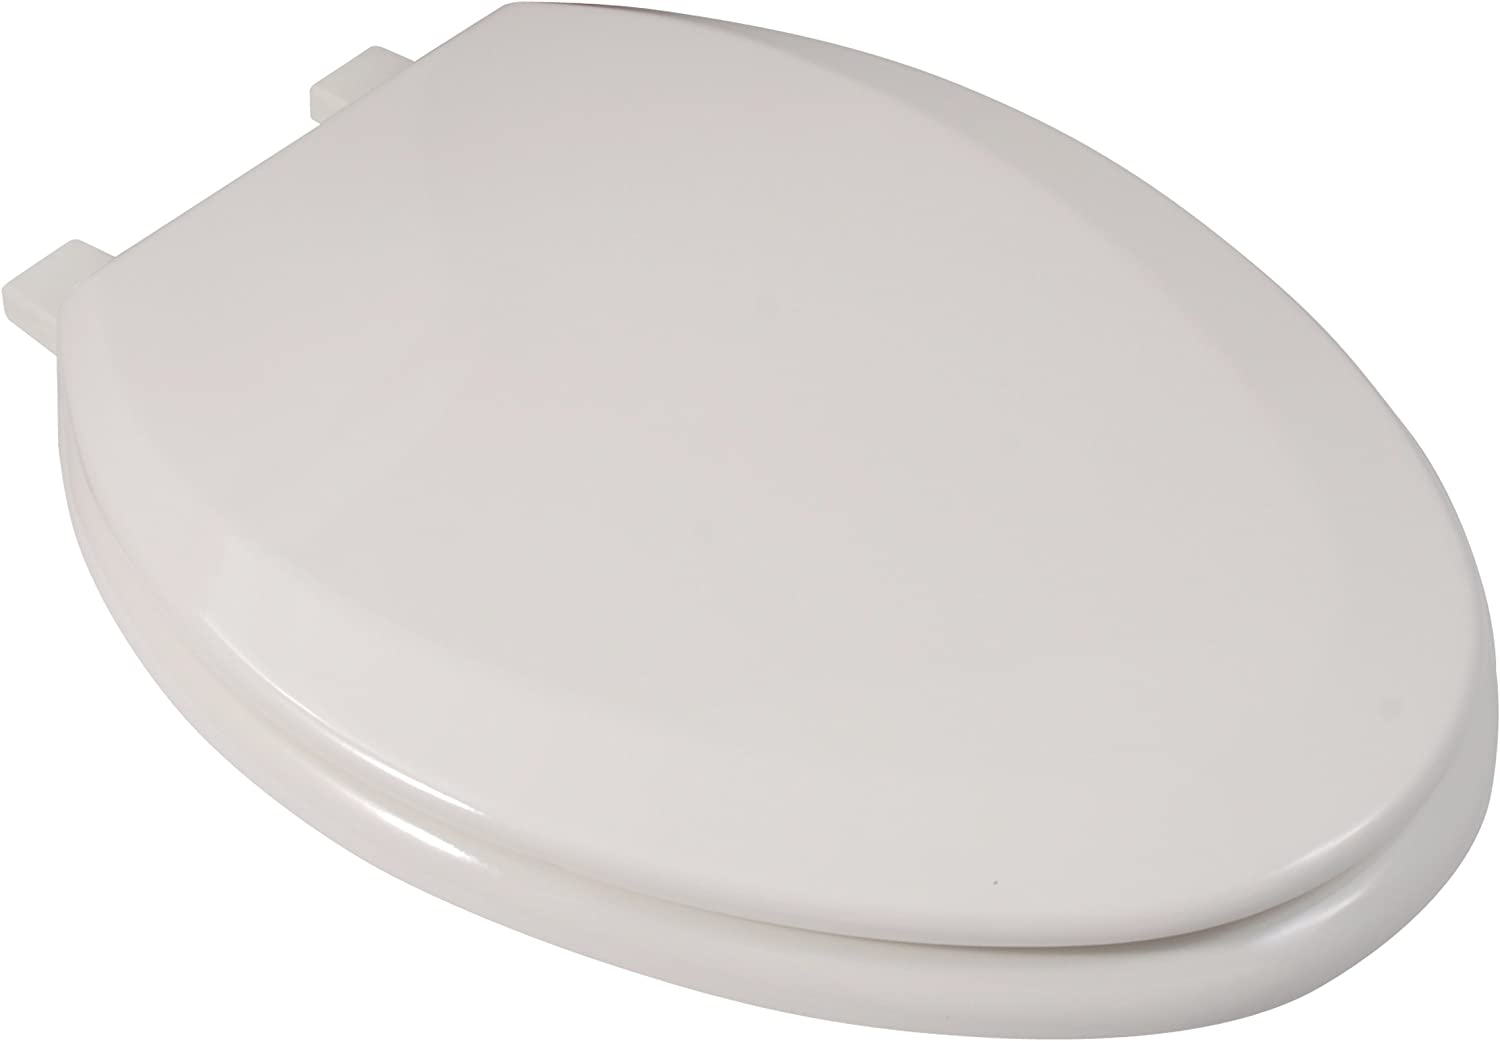 LDR Industries 050 2044BS Exquisite Elongated Beveled Wood Toilet Seat with Plastic Hinge Biscuit